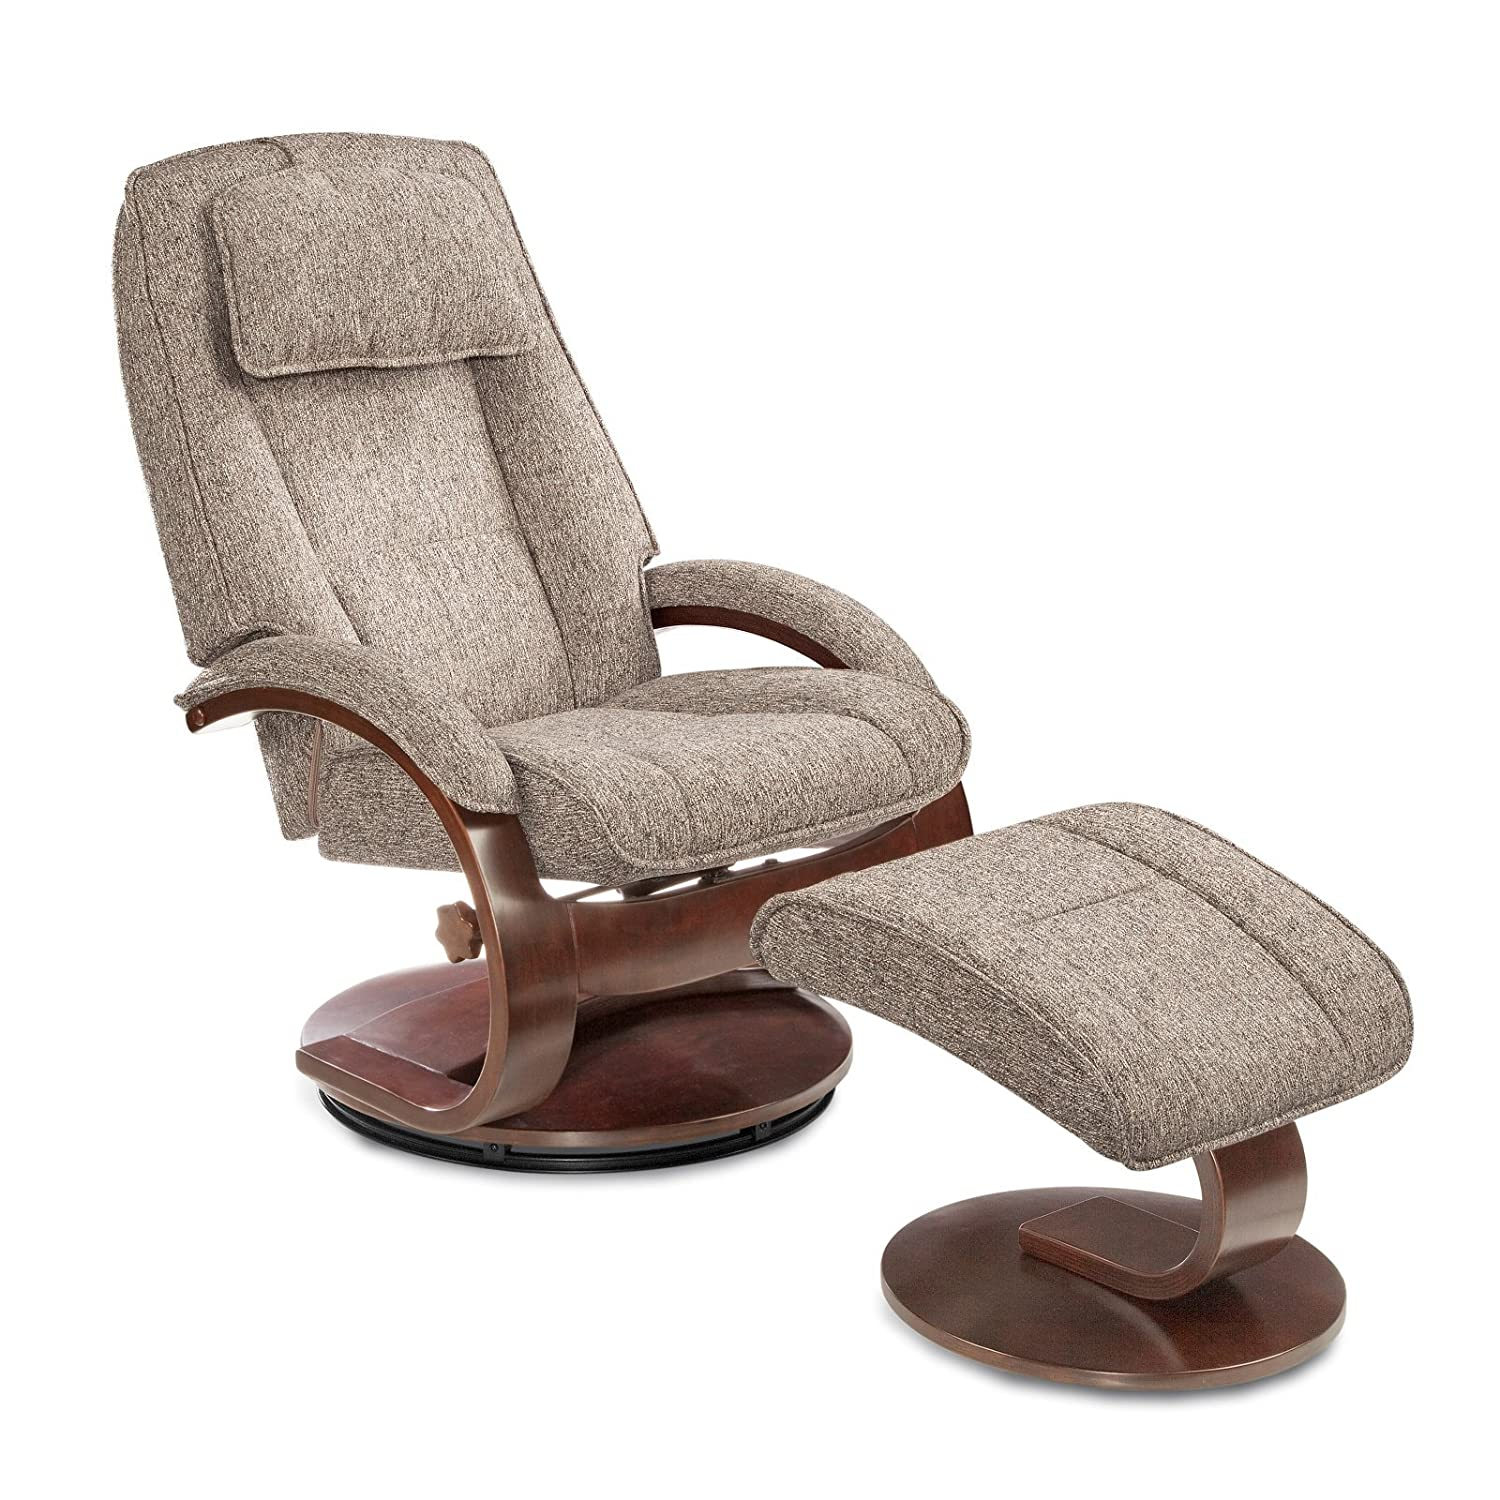 Amazon.com: Teatro Fabric Recliner with Ottoman in Tan: Kitchen & Dining - Amazon.com: Teatro Fabric Recliner With Ottoman In Tan: Kitchen